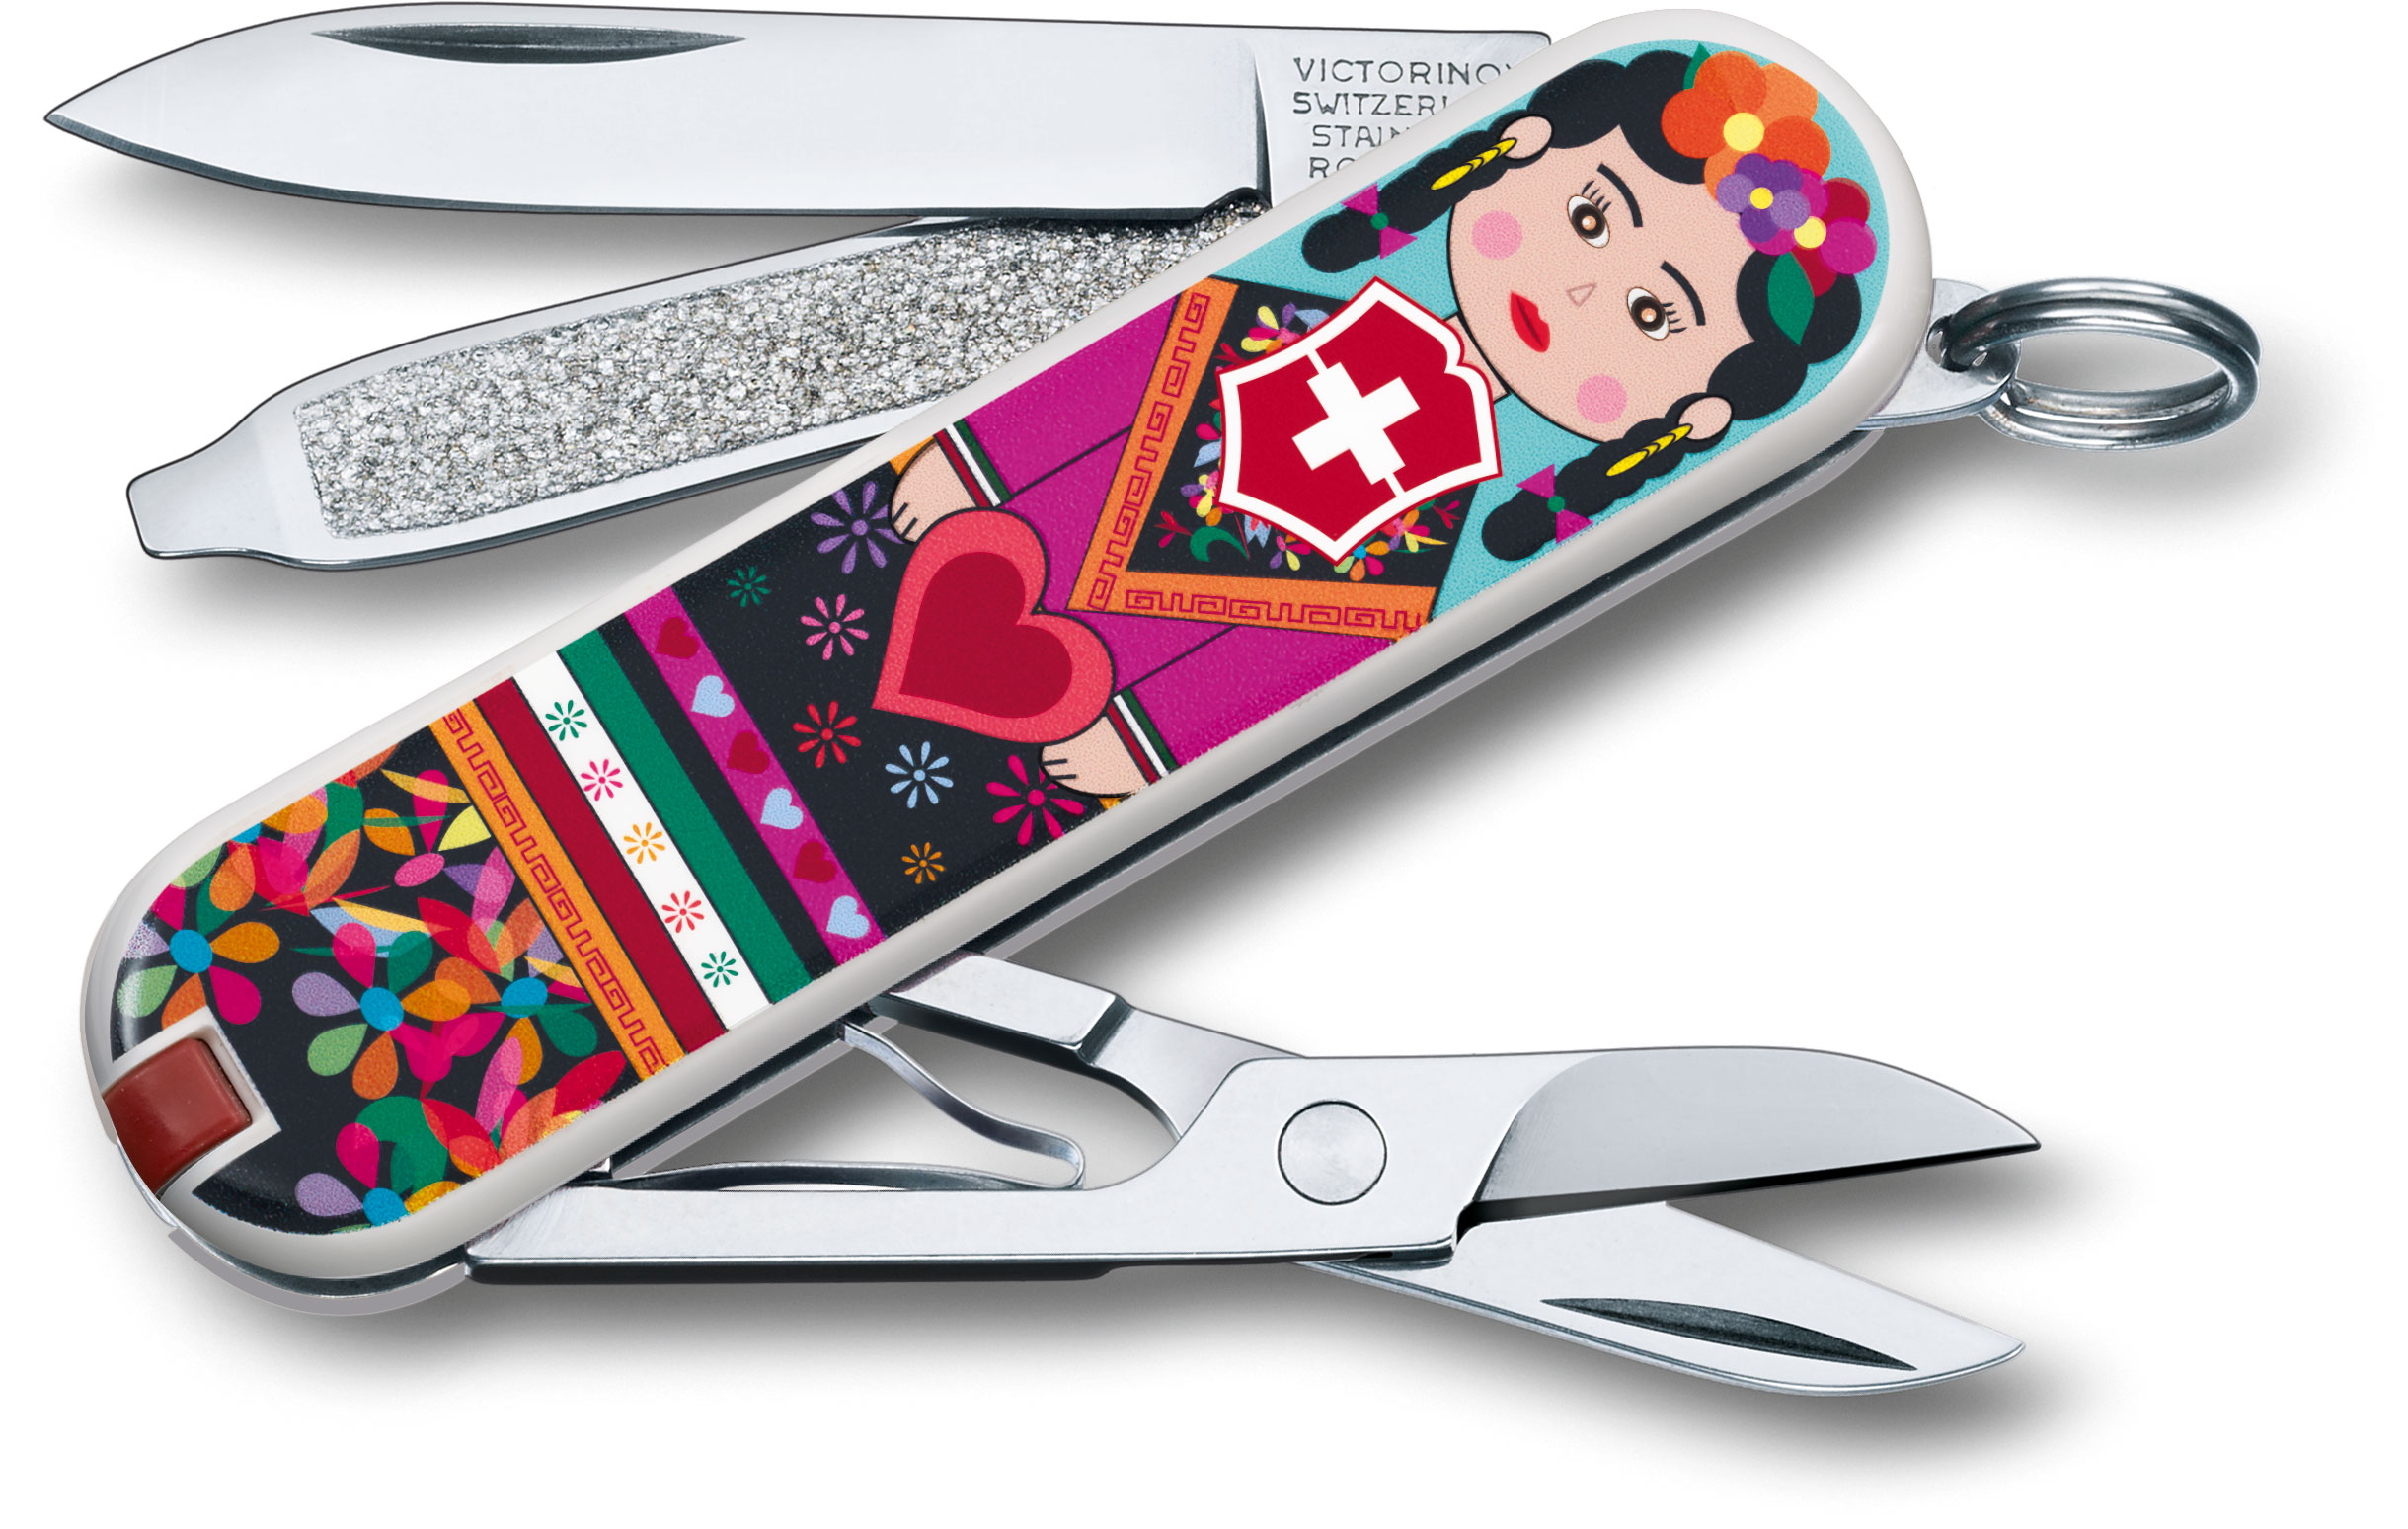 Victorinox Swiss Army Contest Classic SD Limited Edition 2016 Multi-Tool, Mexican, 2.25 inch Closed